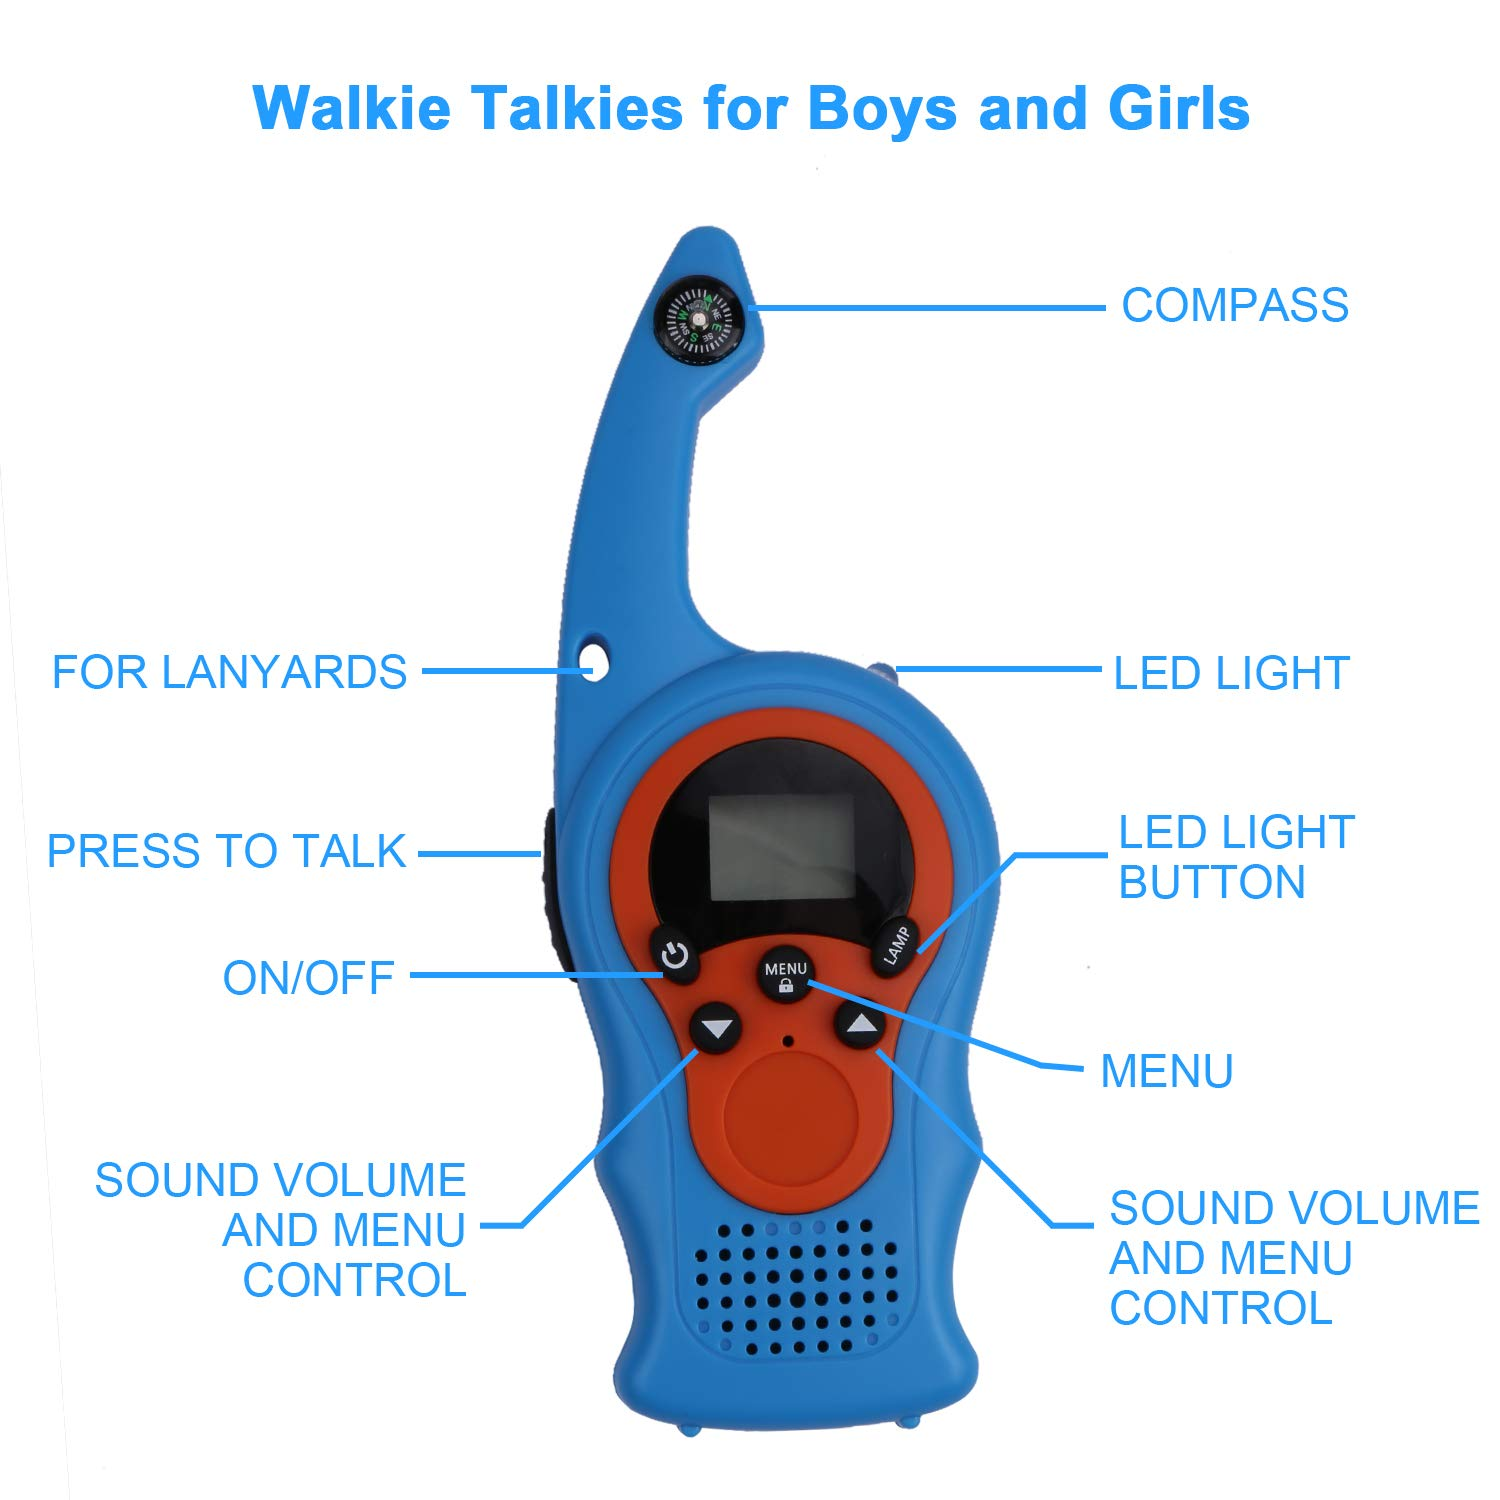 izBuy Kids Walkie Talkies, 22 Channels 3 Miles Range with Compass Flashlight, 2 Way Radio Walkie Talkie for Boys and Girls, 2 Pack Walkie Talkies with Lanyards, Ideal Outdoor Indoor Partner by izBuy (Image #2)